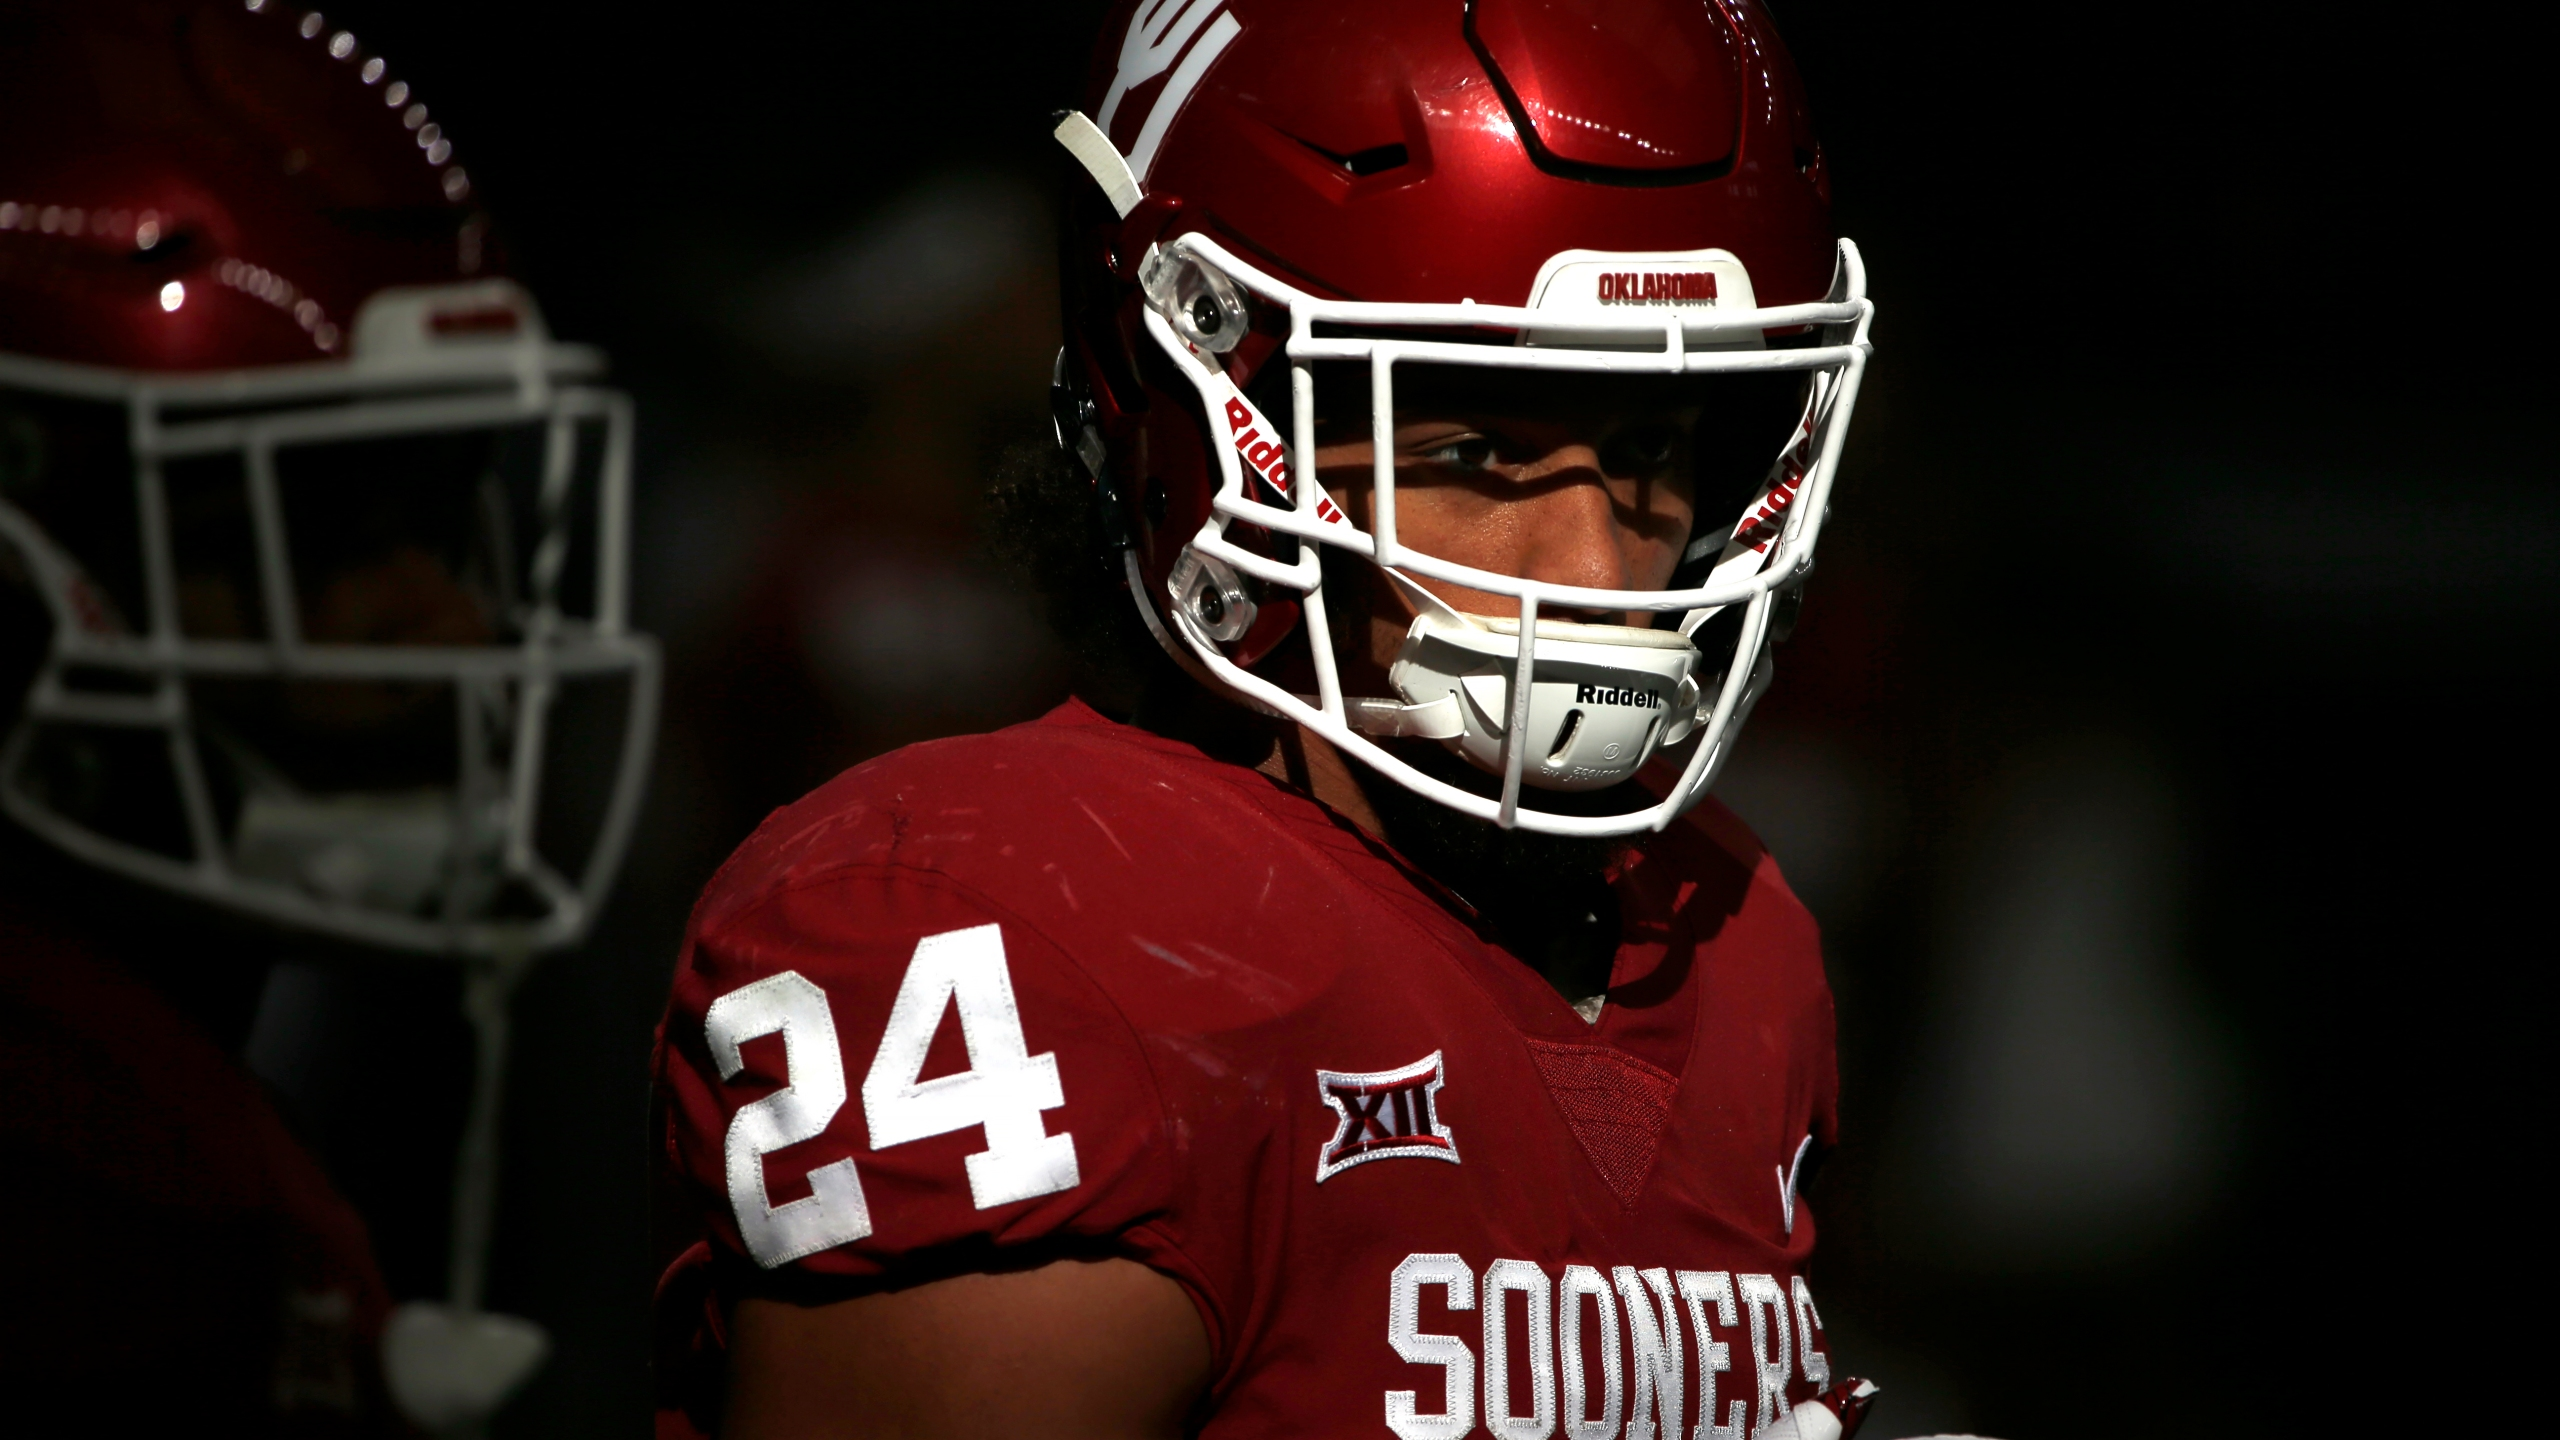 Rodney Anderson #24 of the Oklahoma Sooners takes the field before the Oklahoma Sooners play the TCU Horned Frogs at AT&T Stadium on December 2, 2017 in Arlington, Texas. OU won 41-17. (Photo by Ron Jenkins/Getty Images)